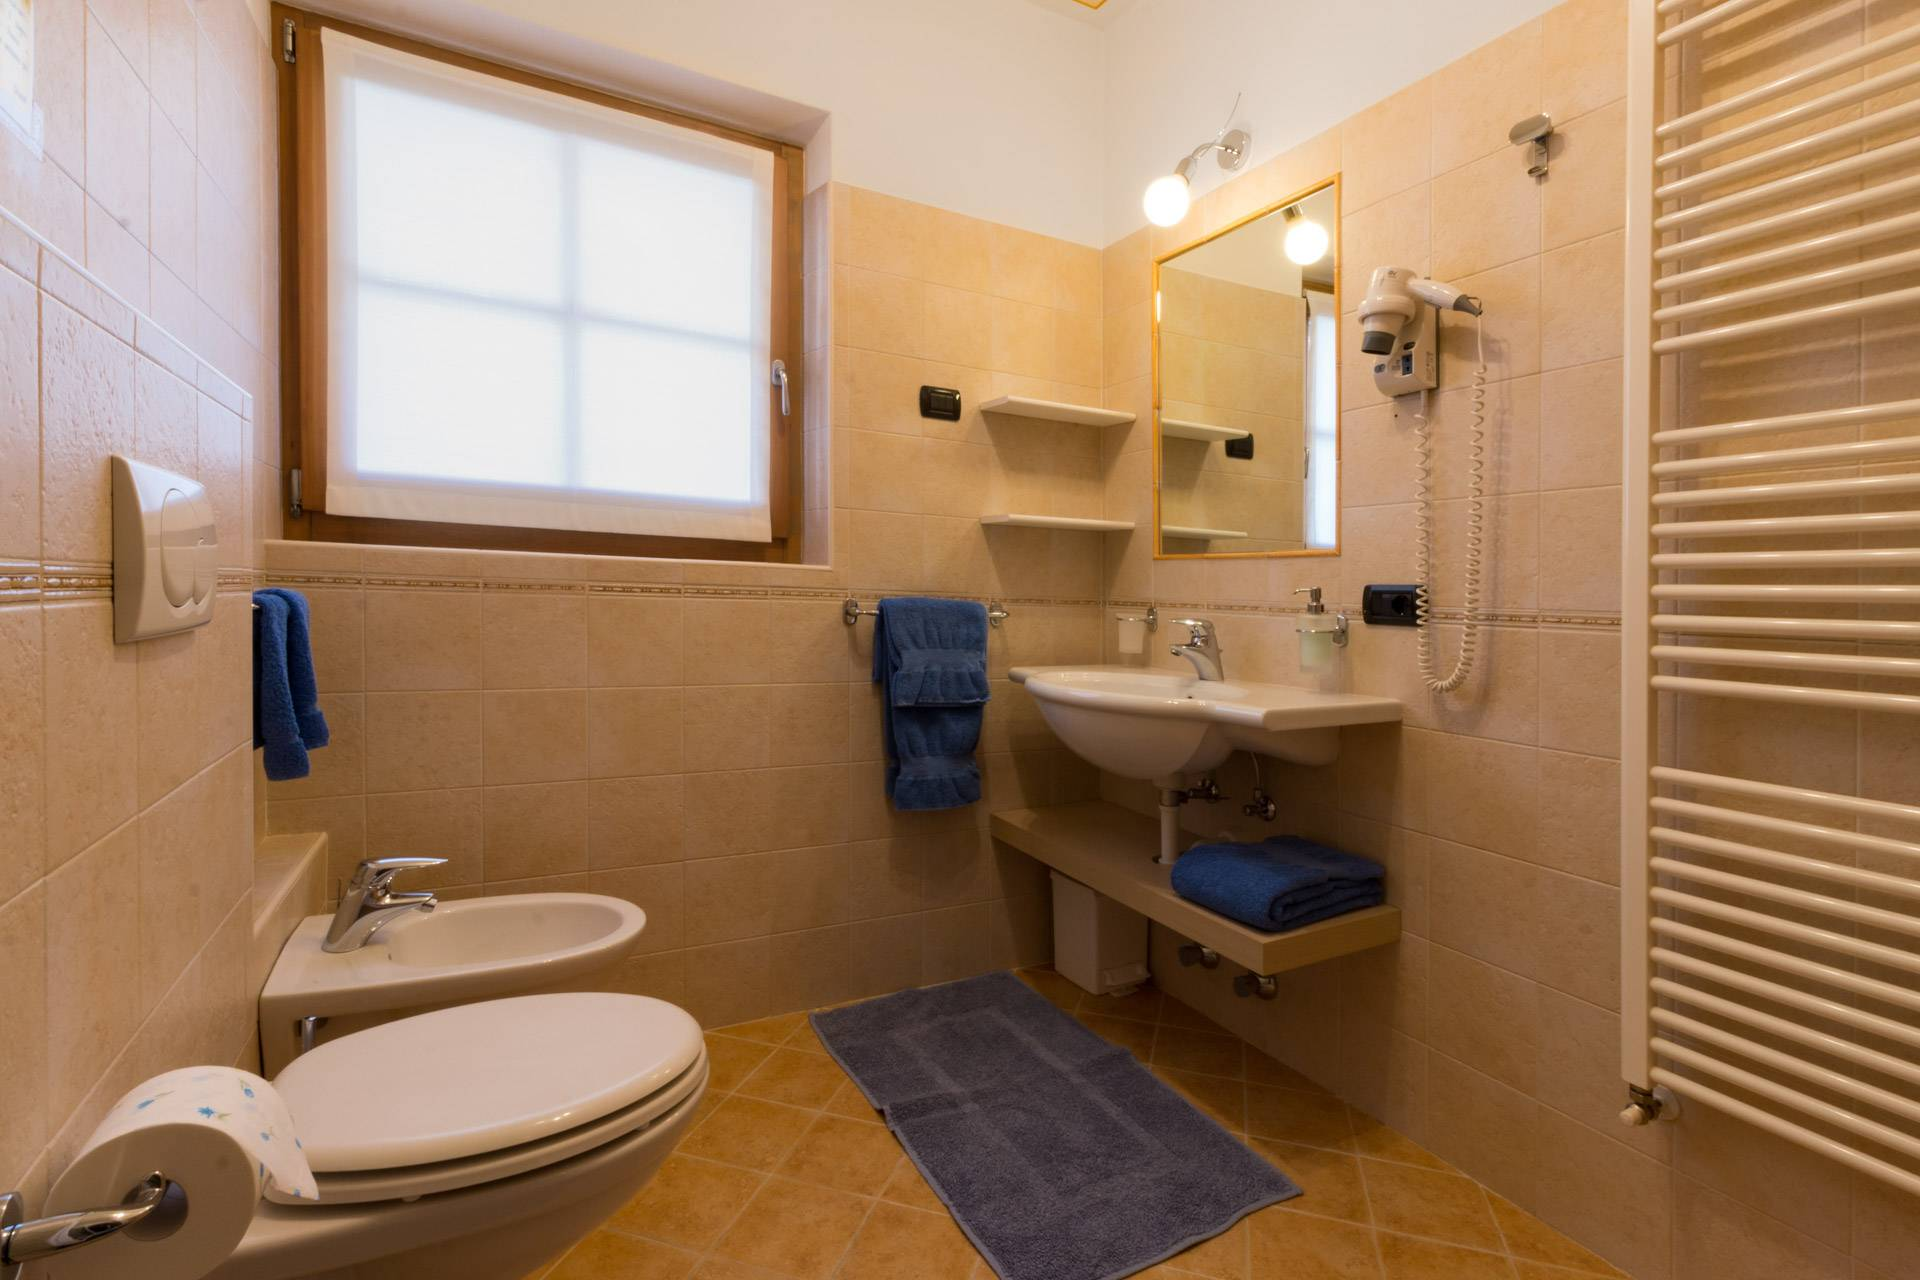 Bathroom with shower in Chalets Molin's apartments